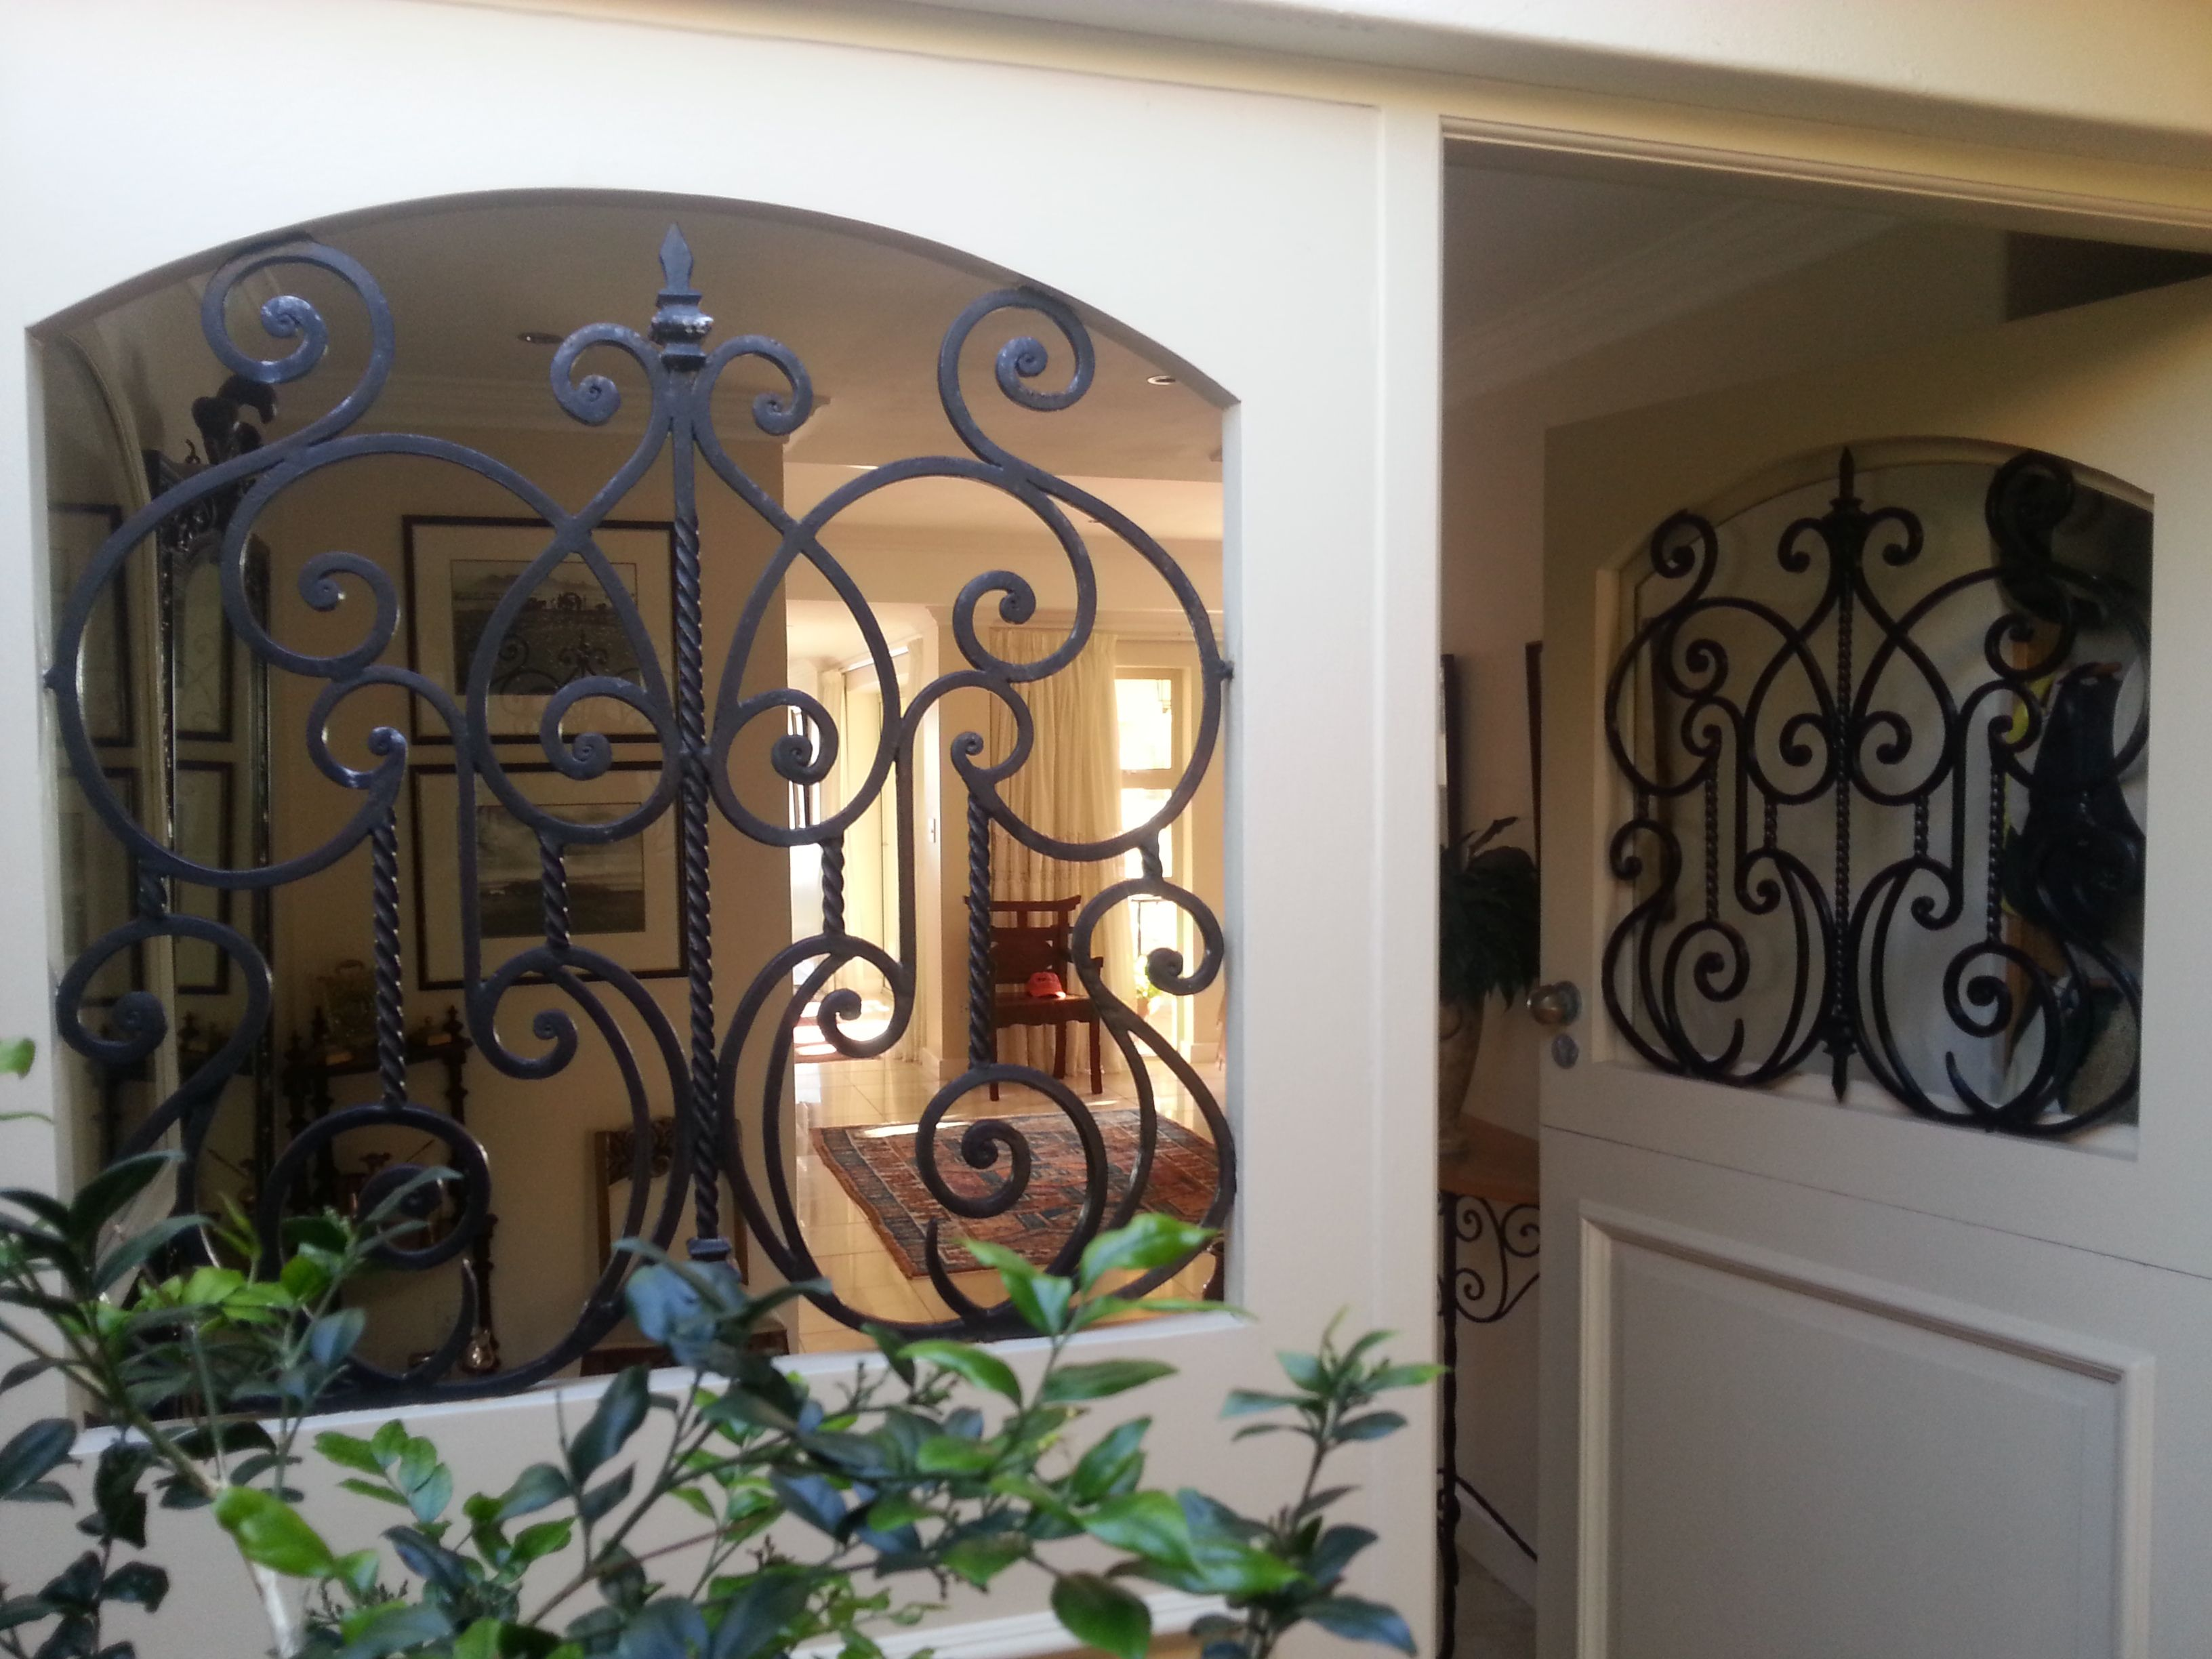 16mm Square Bar Scroll Pattern In Wooden Door Frame 16 Years Old